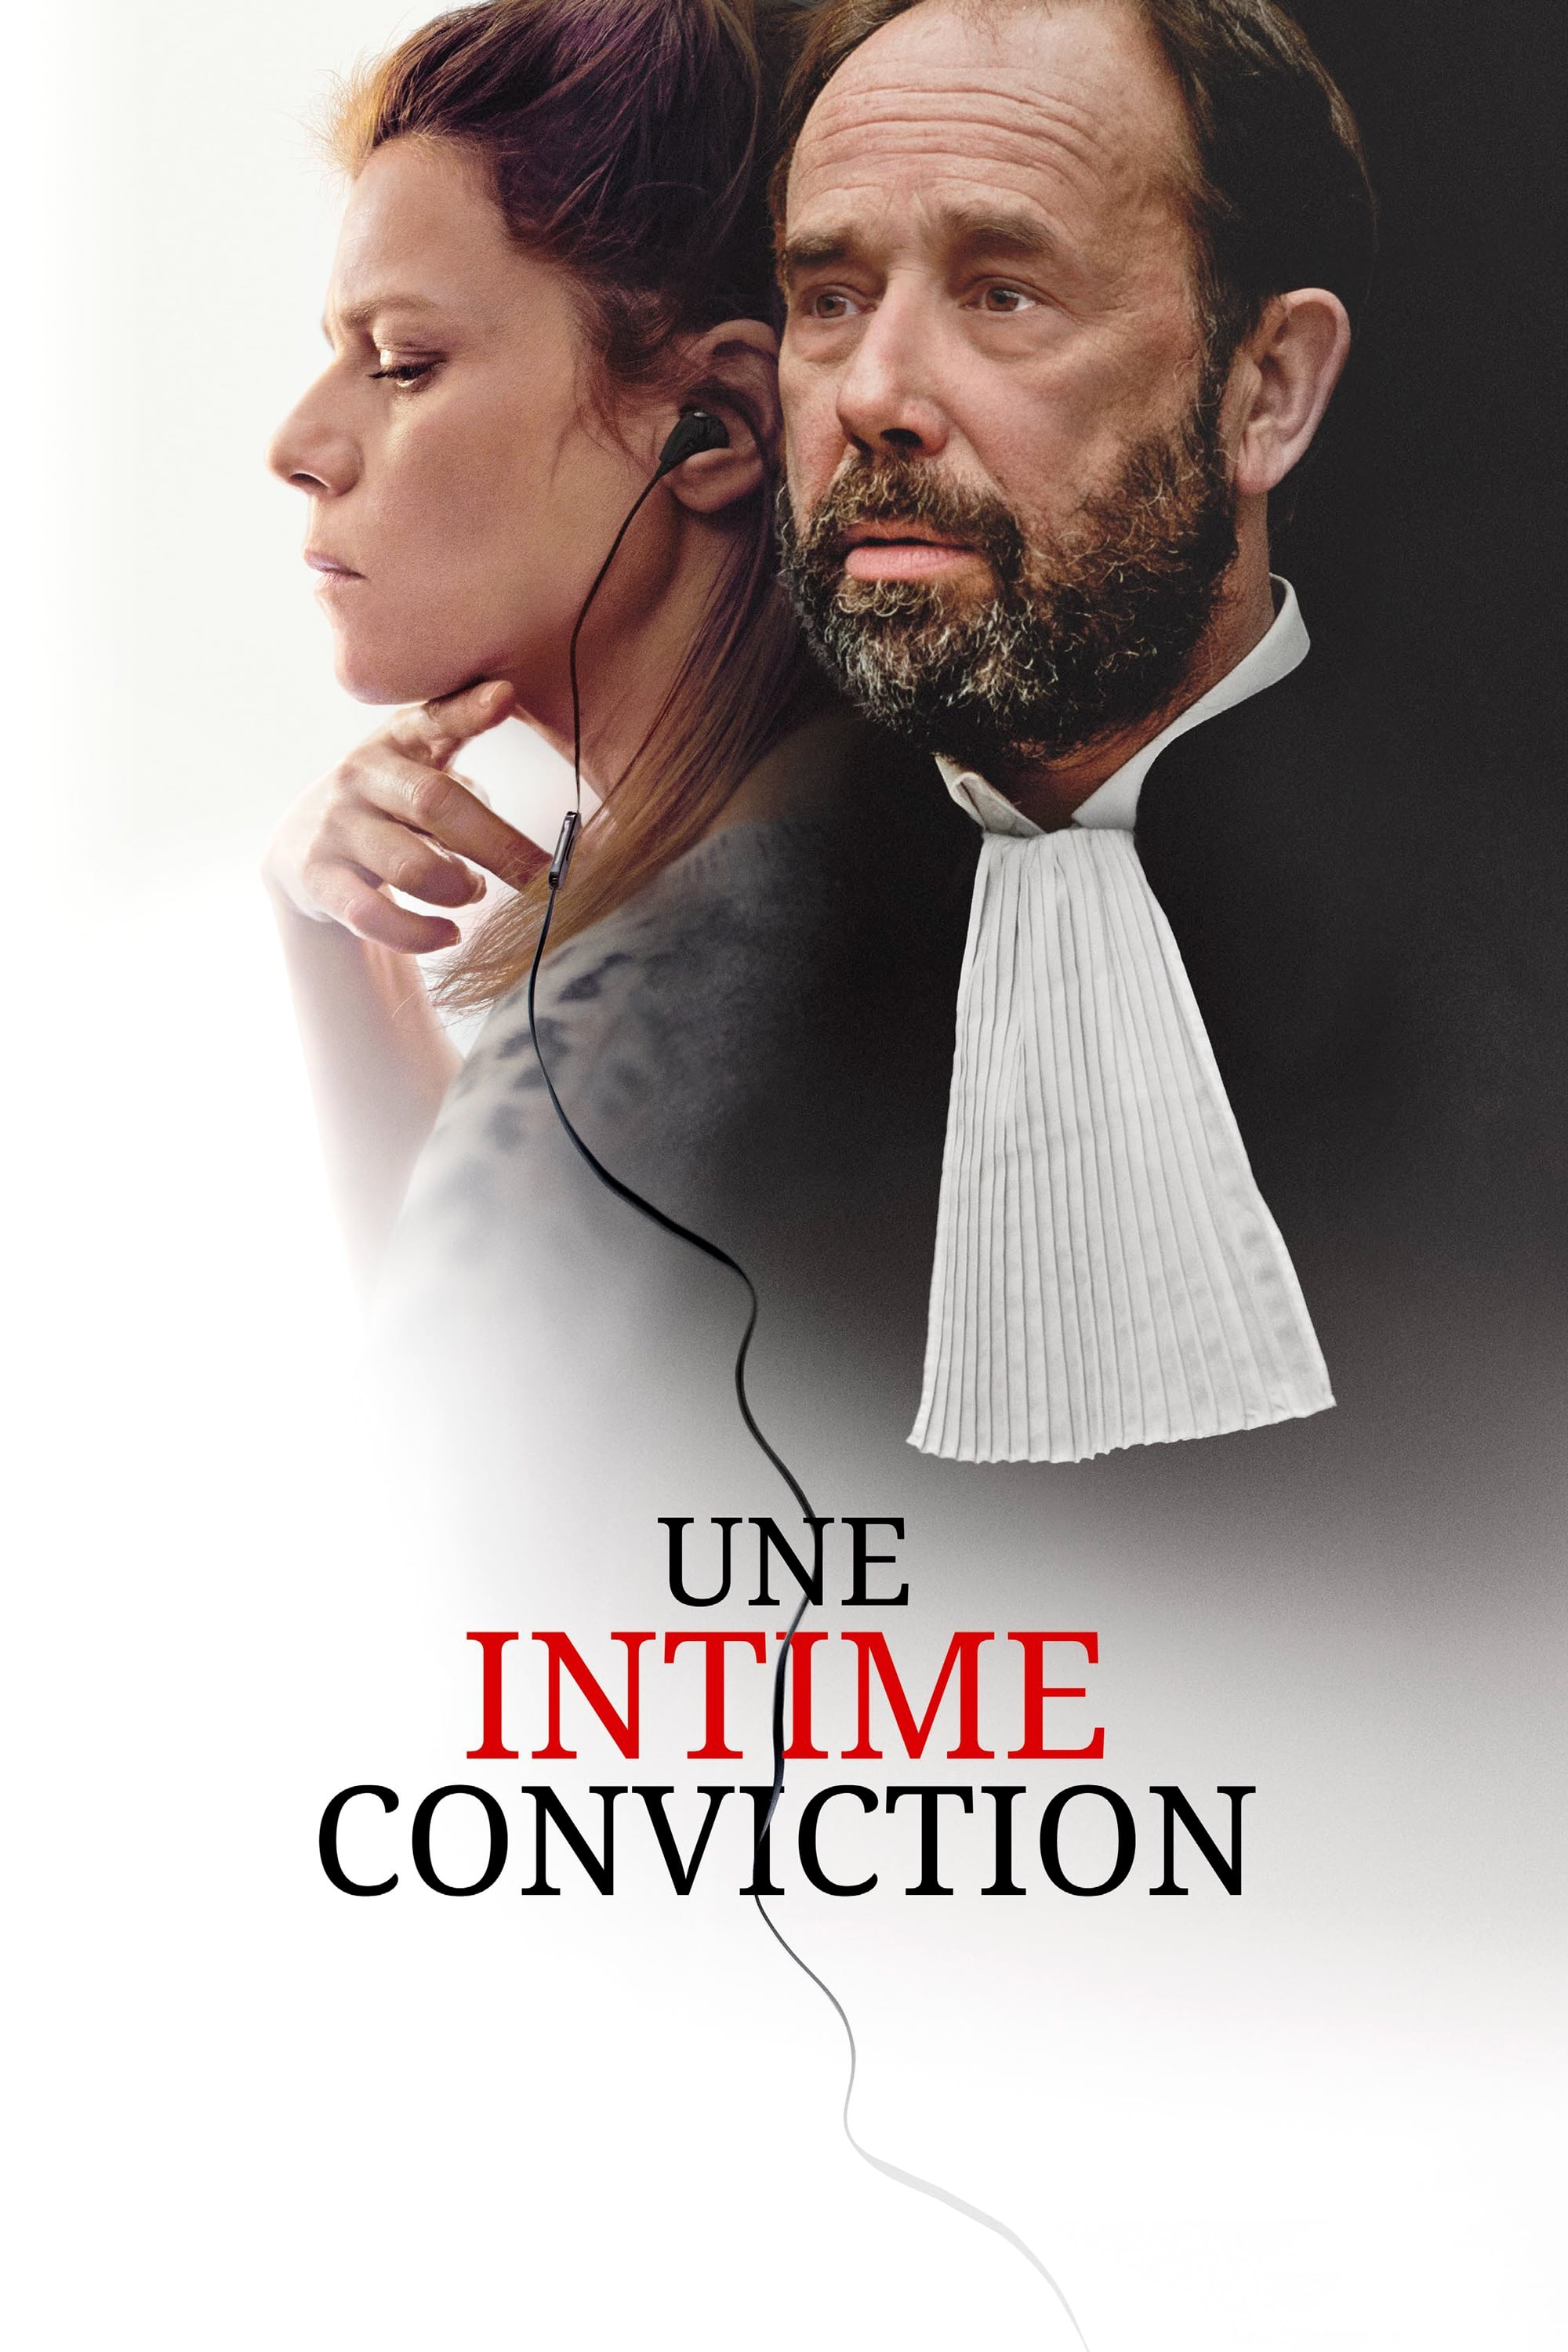 watch Conviction 2019 yesmovies online free